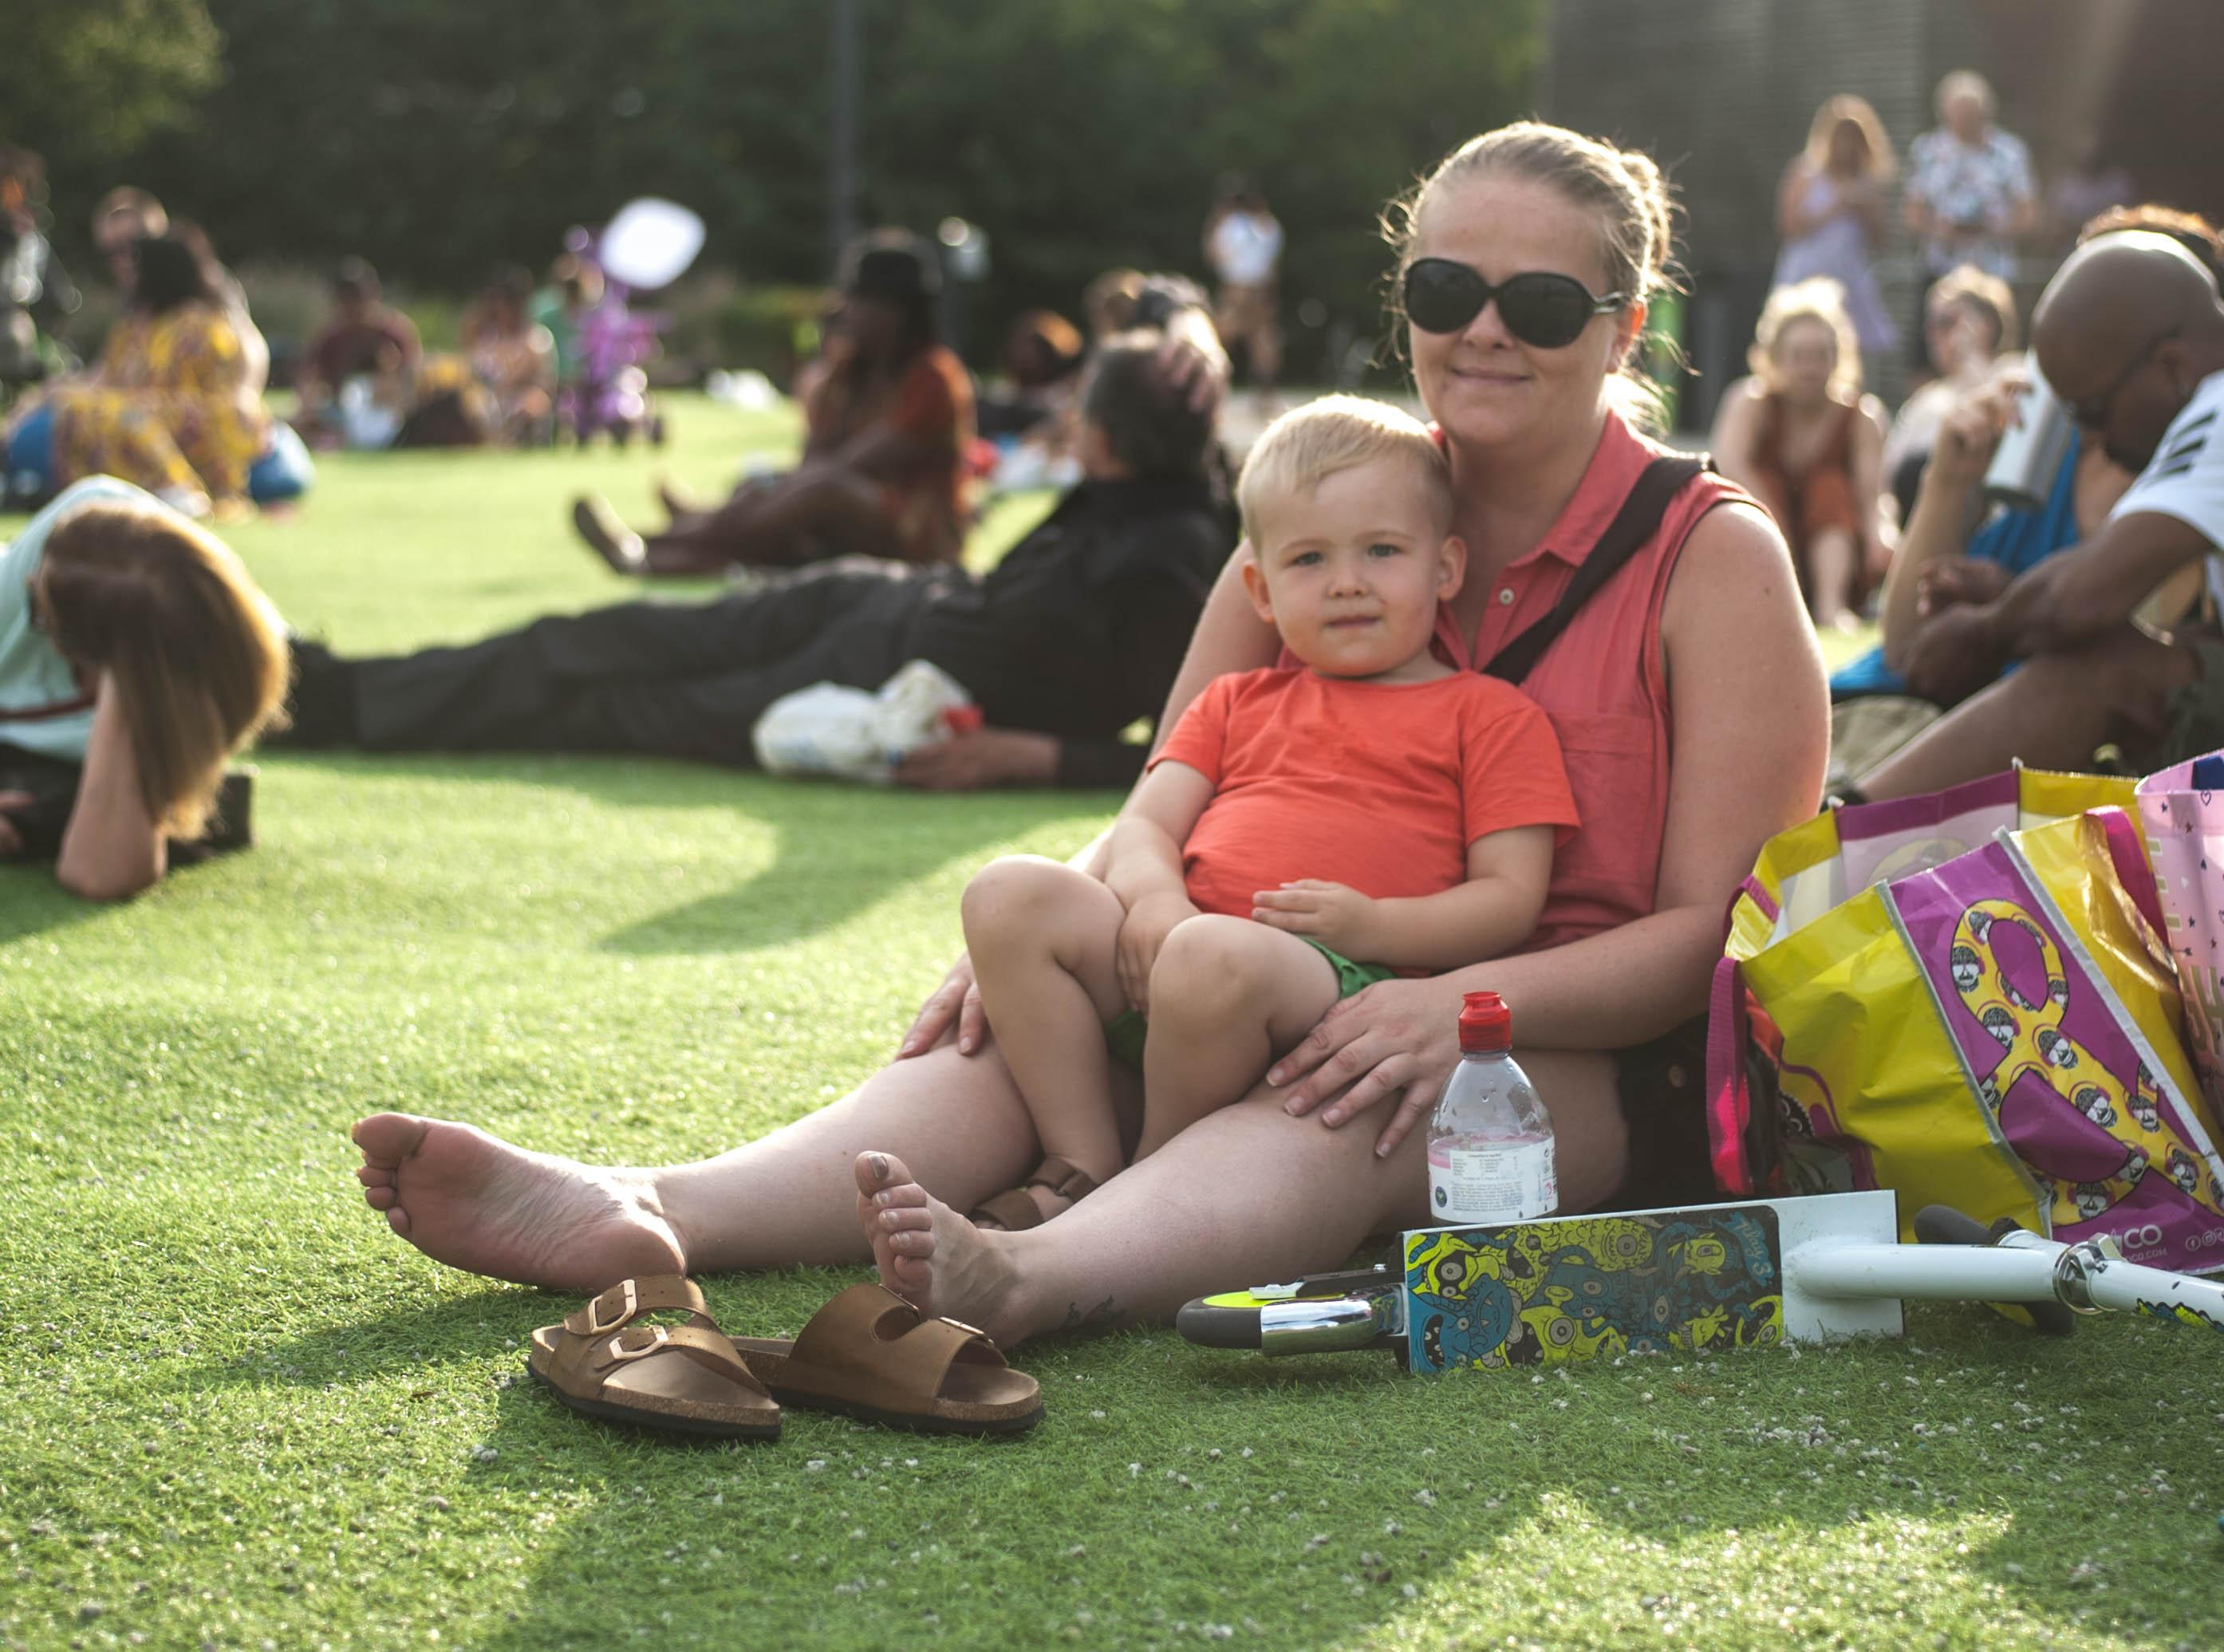 A woman sat with child on the grass